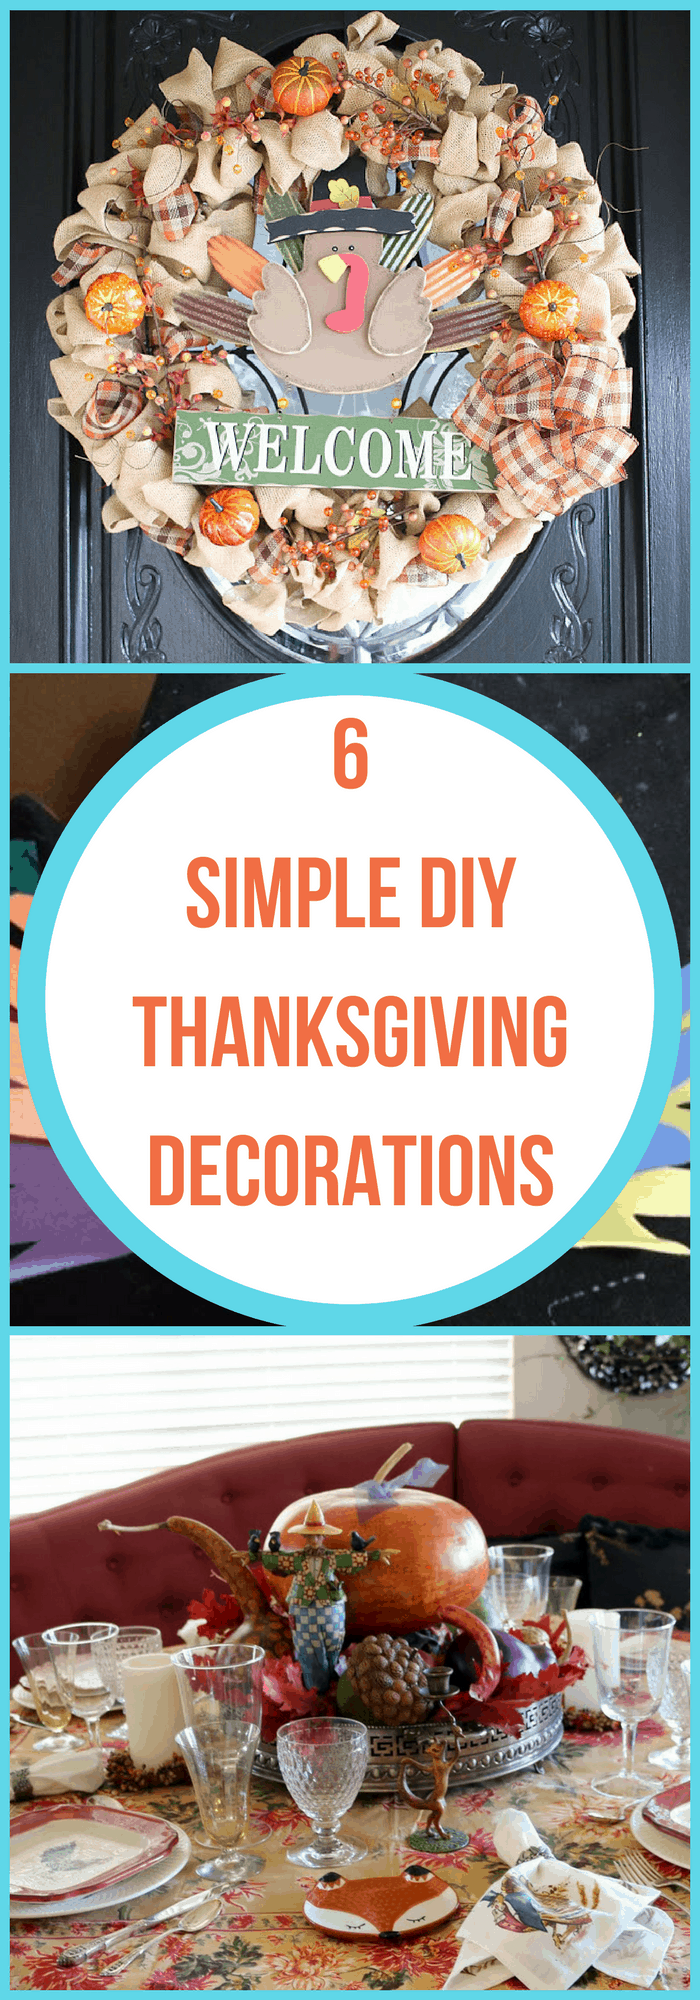 DIY-Simple Thanksgiving Decorations-The Organized Mom